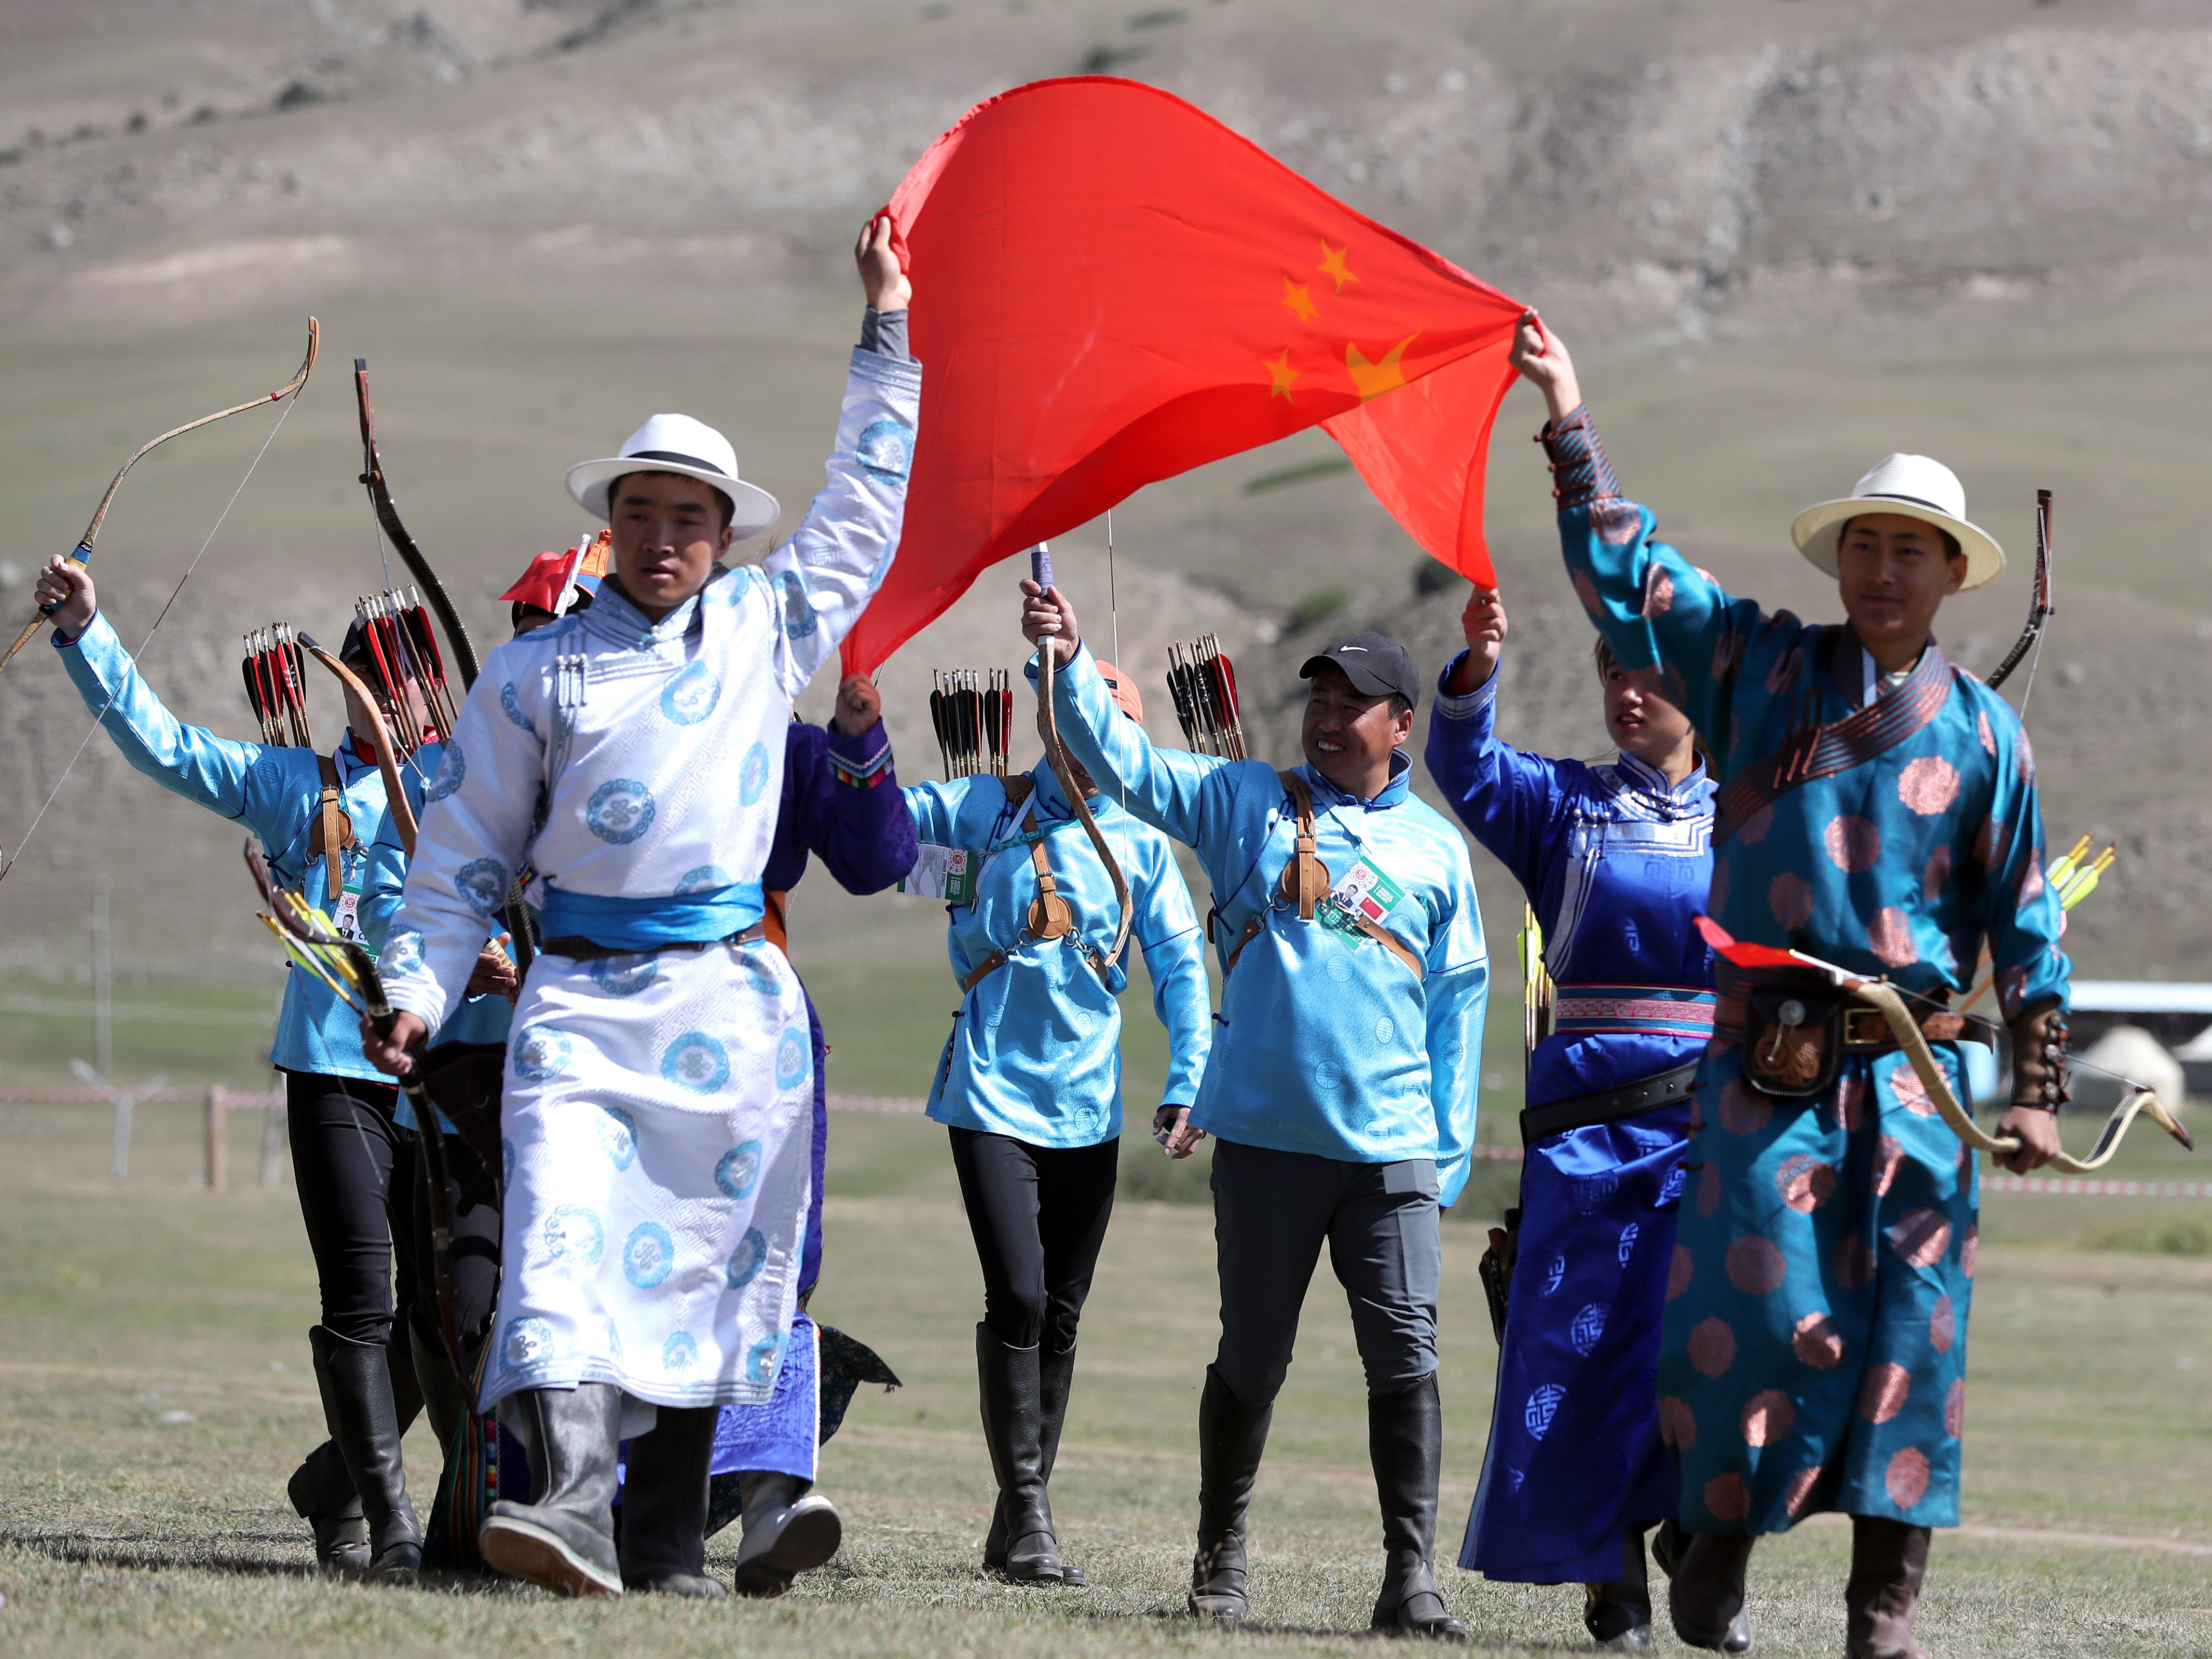 A team parades during the third World Nomad Games in Cholpon-Ata, Kyrgyzstan, Sept. 4, 2018.